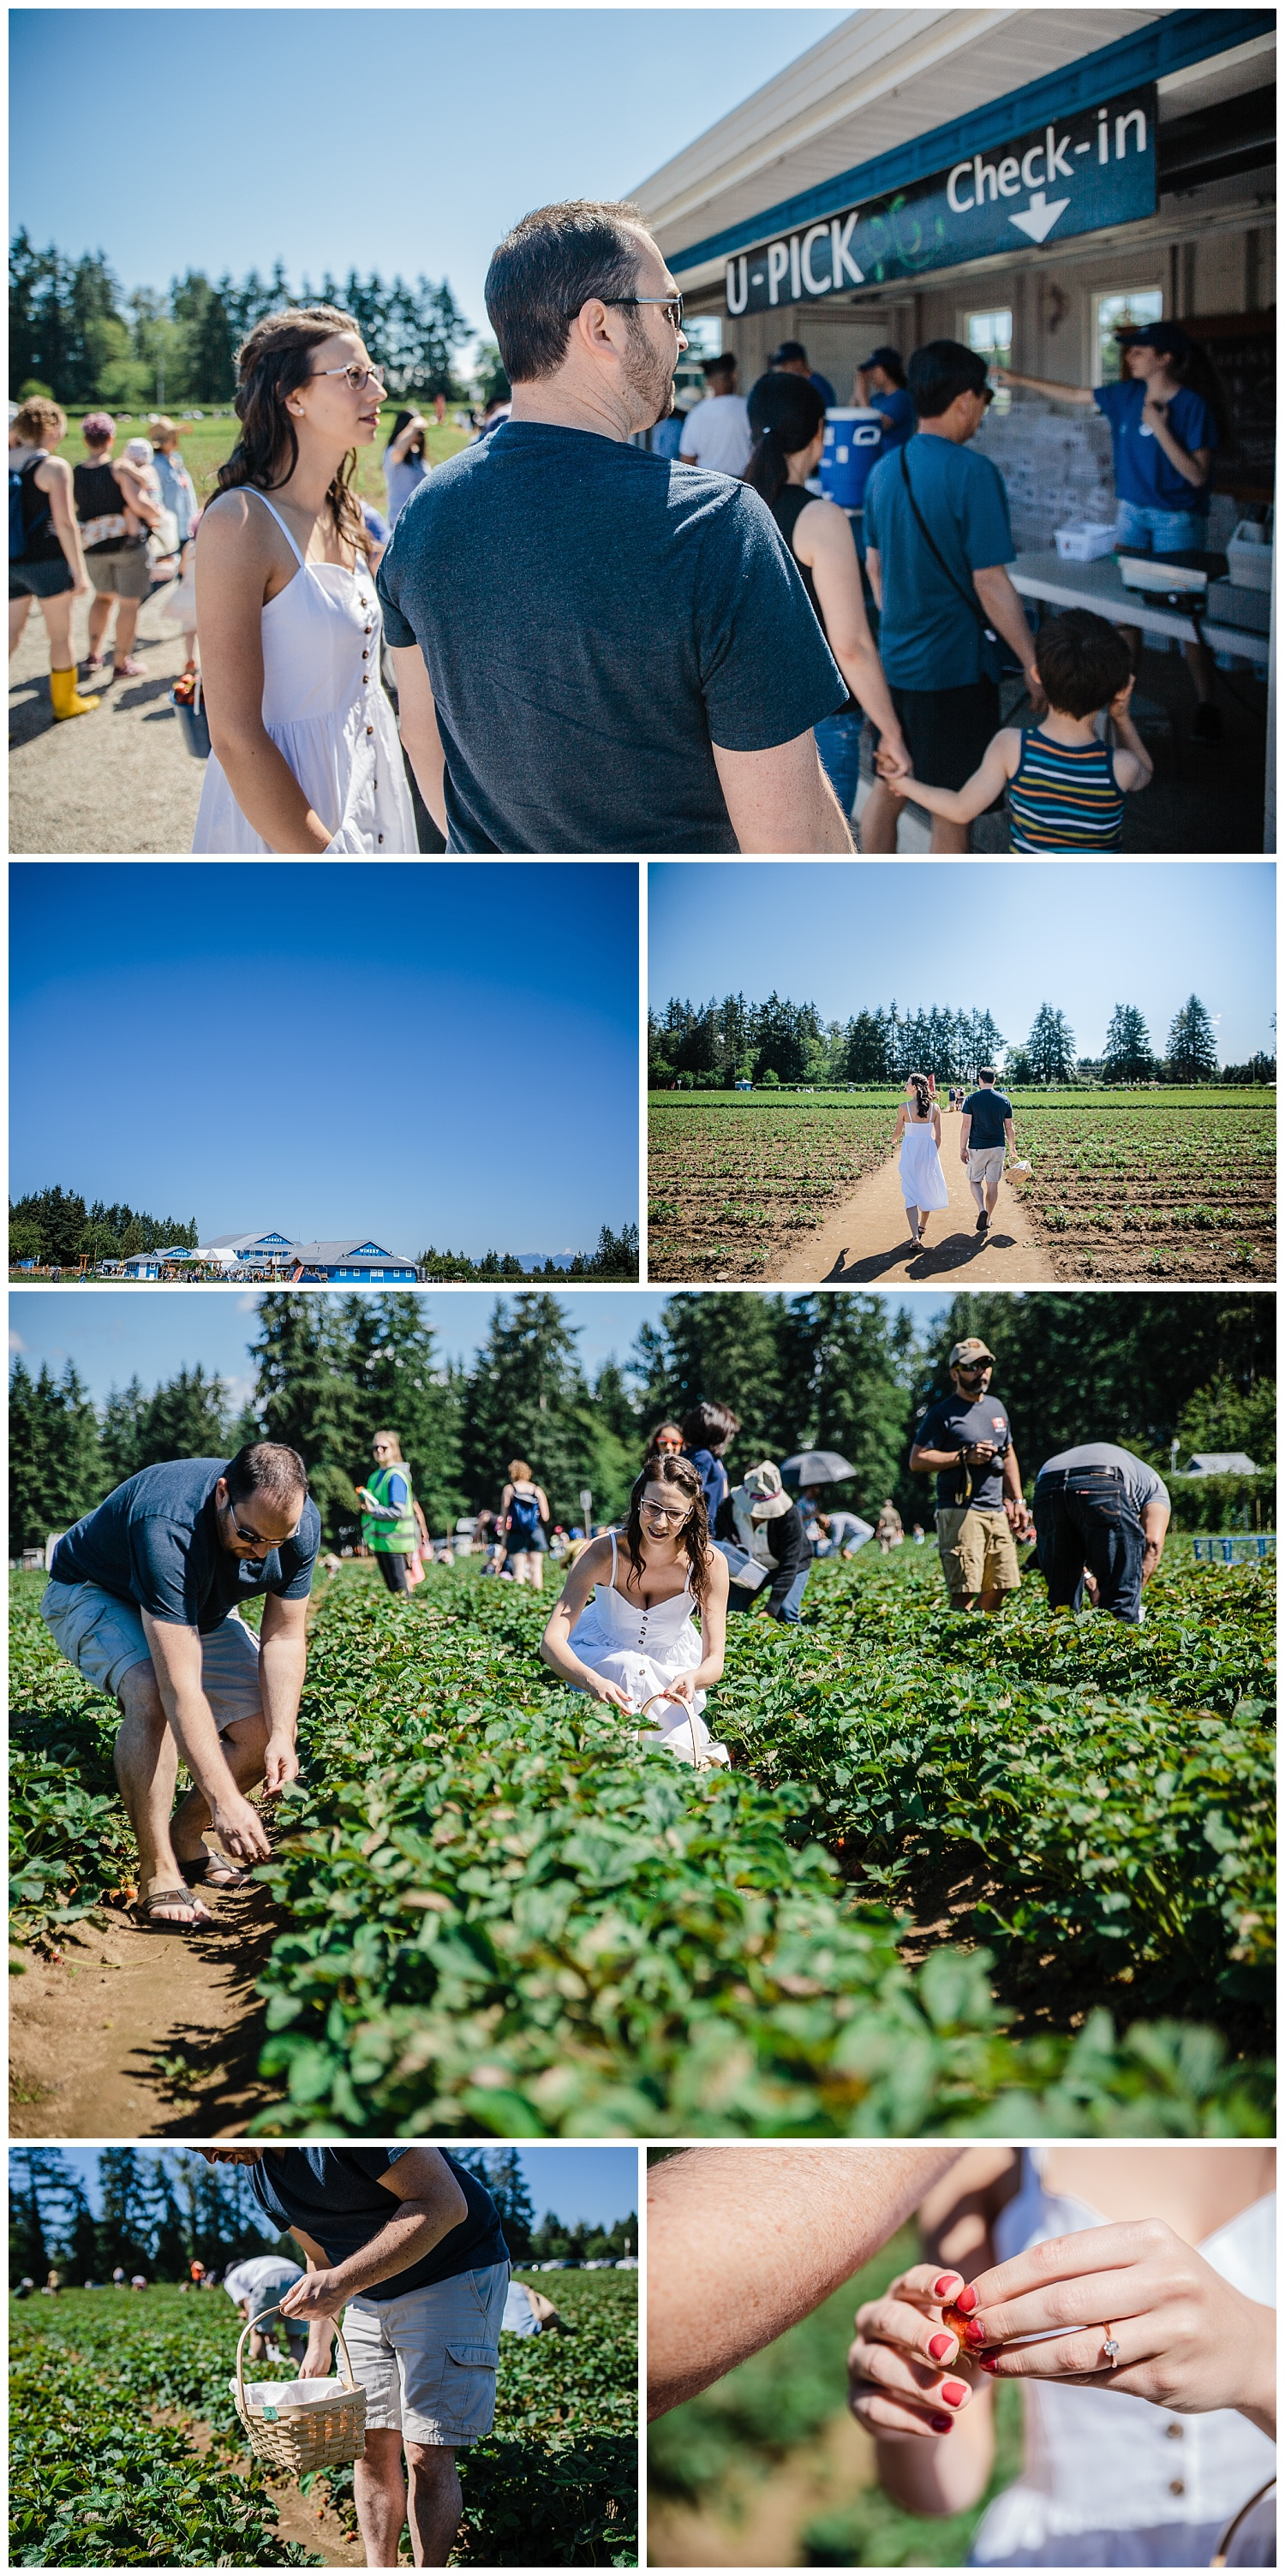 Krause Berry Farm Documentary Fun Engagement Photographer Fort Langley  Mustard Yellow City -003_collage.jpg